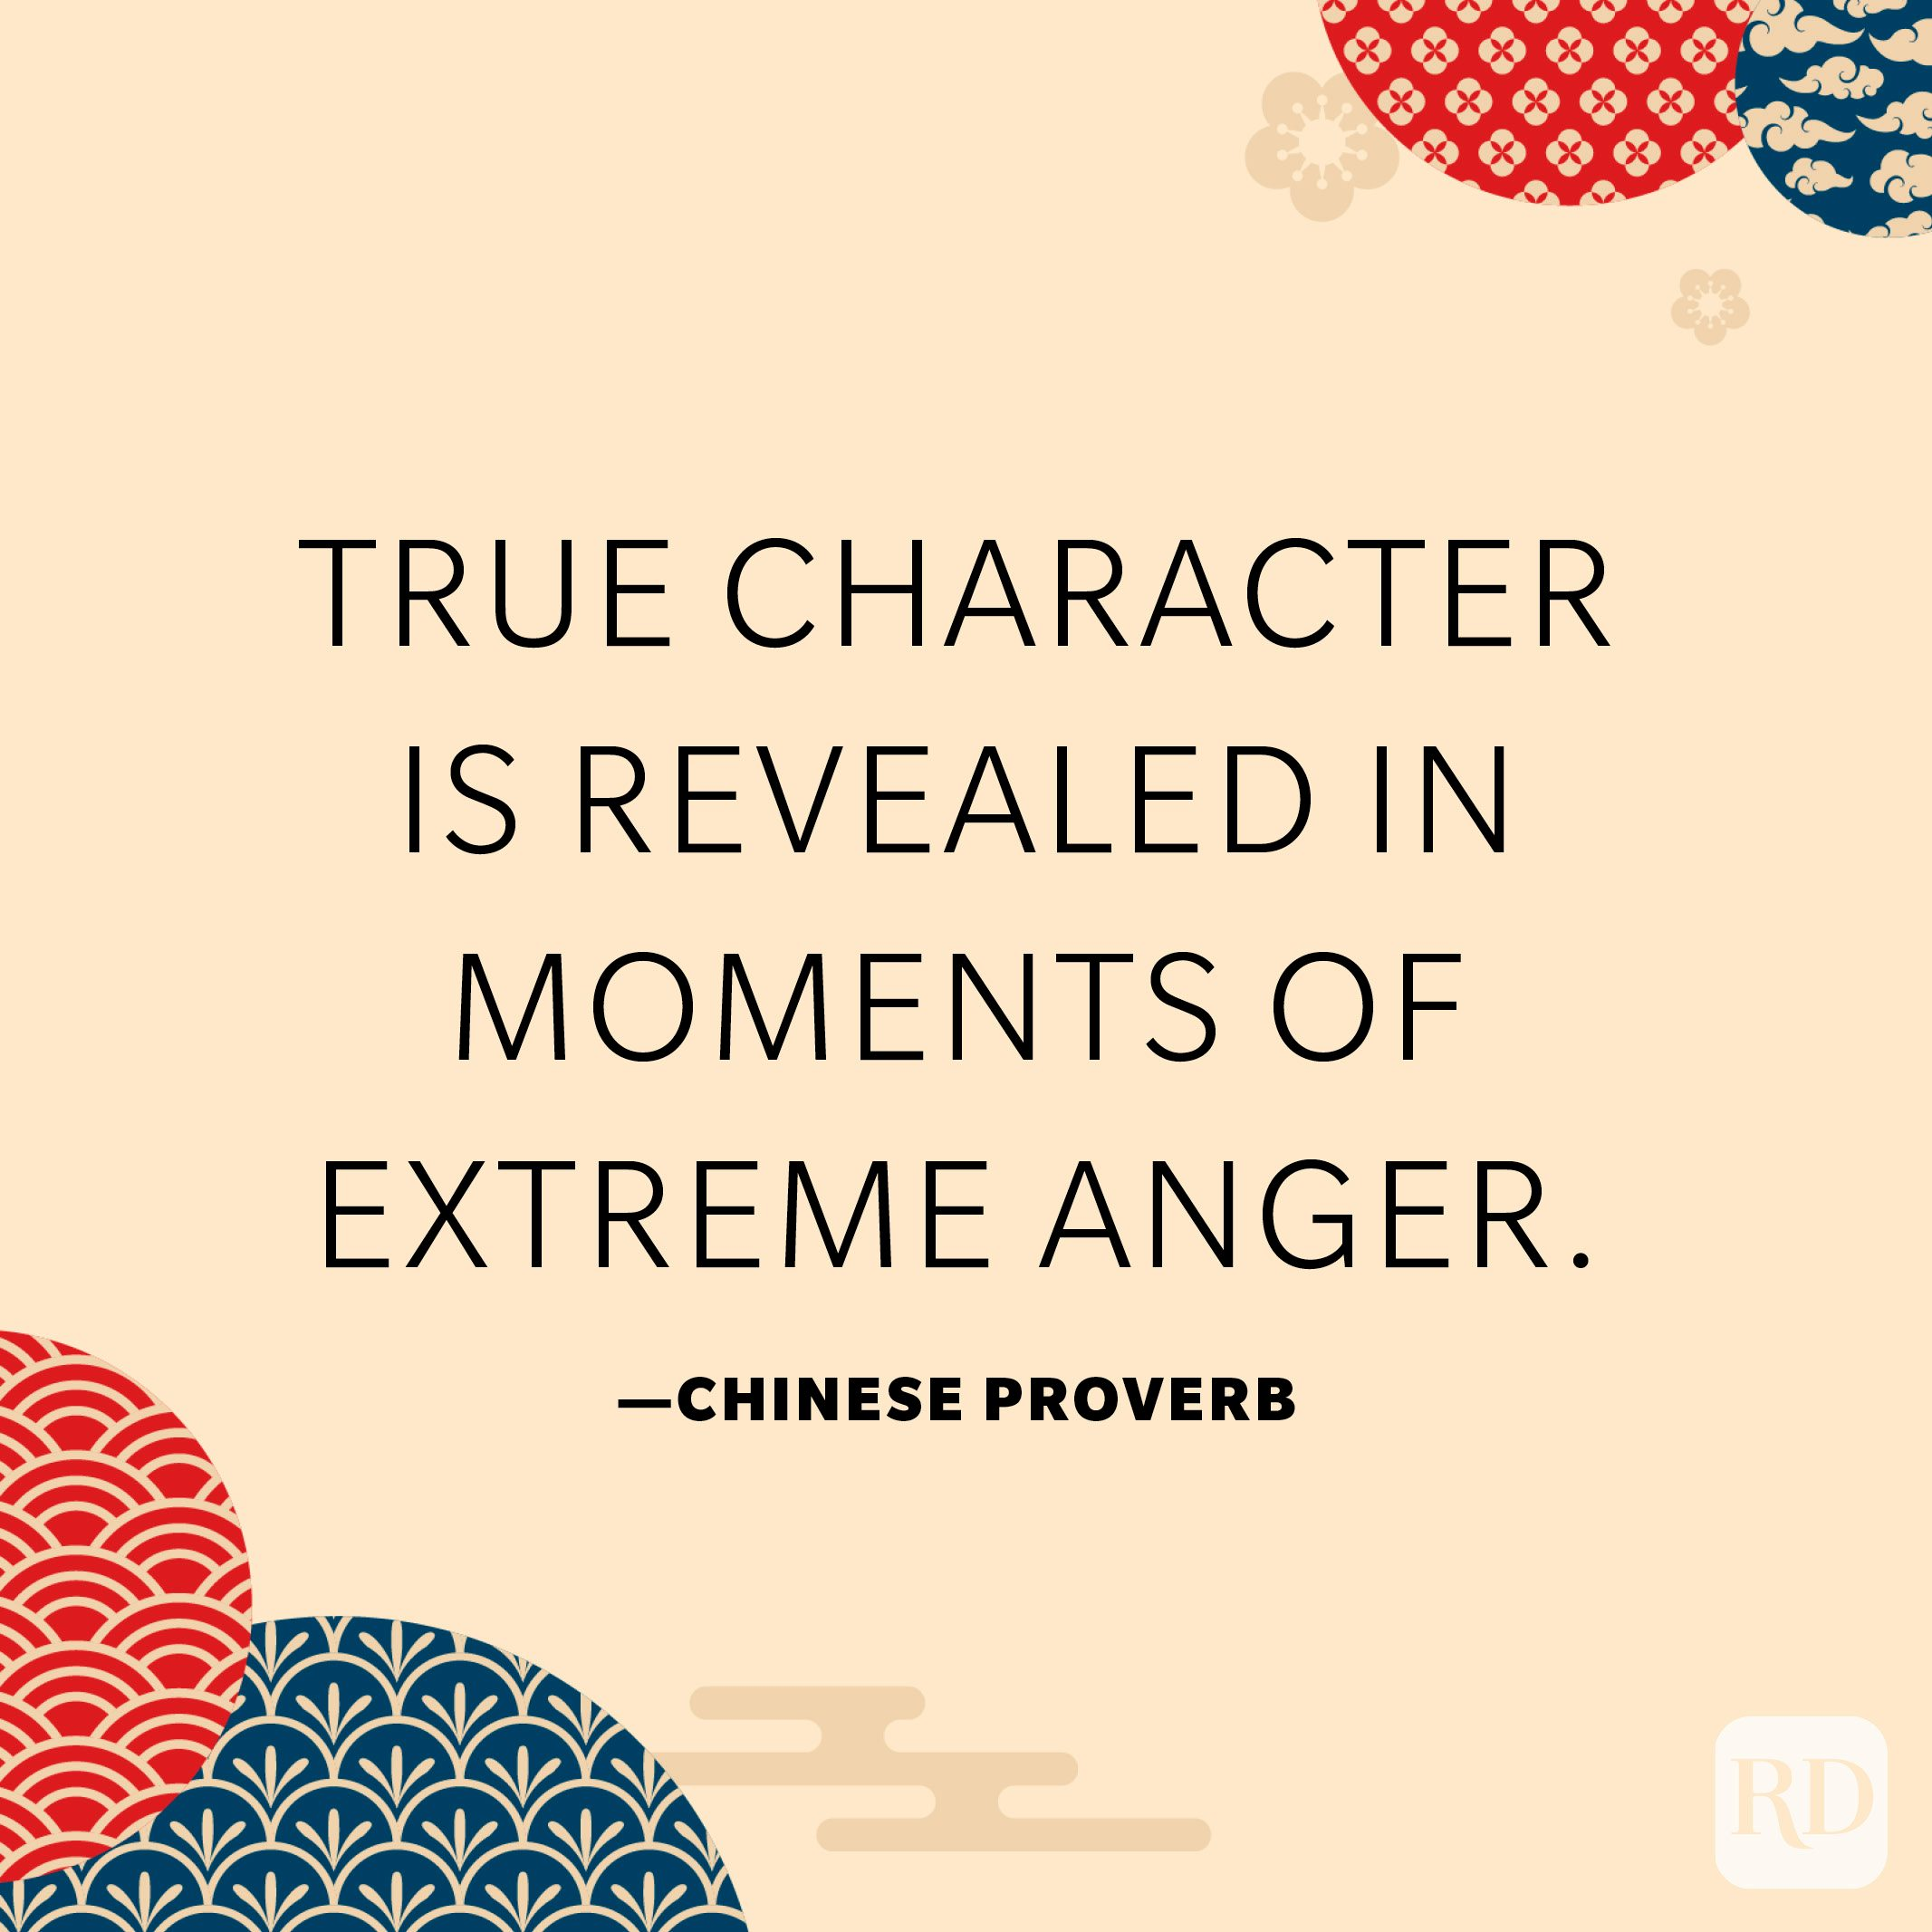 True character is revealed in moments of extreme anger.